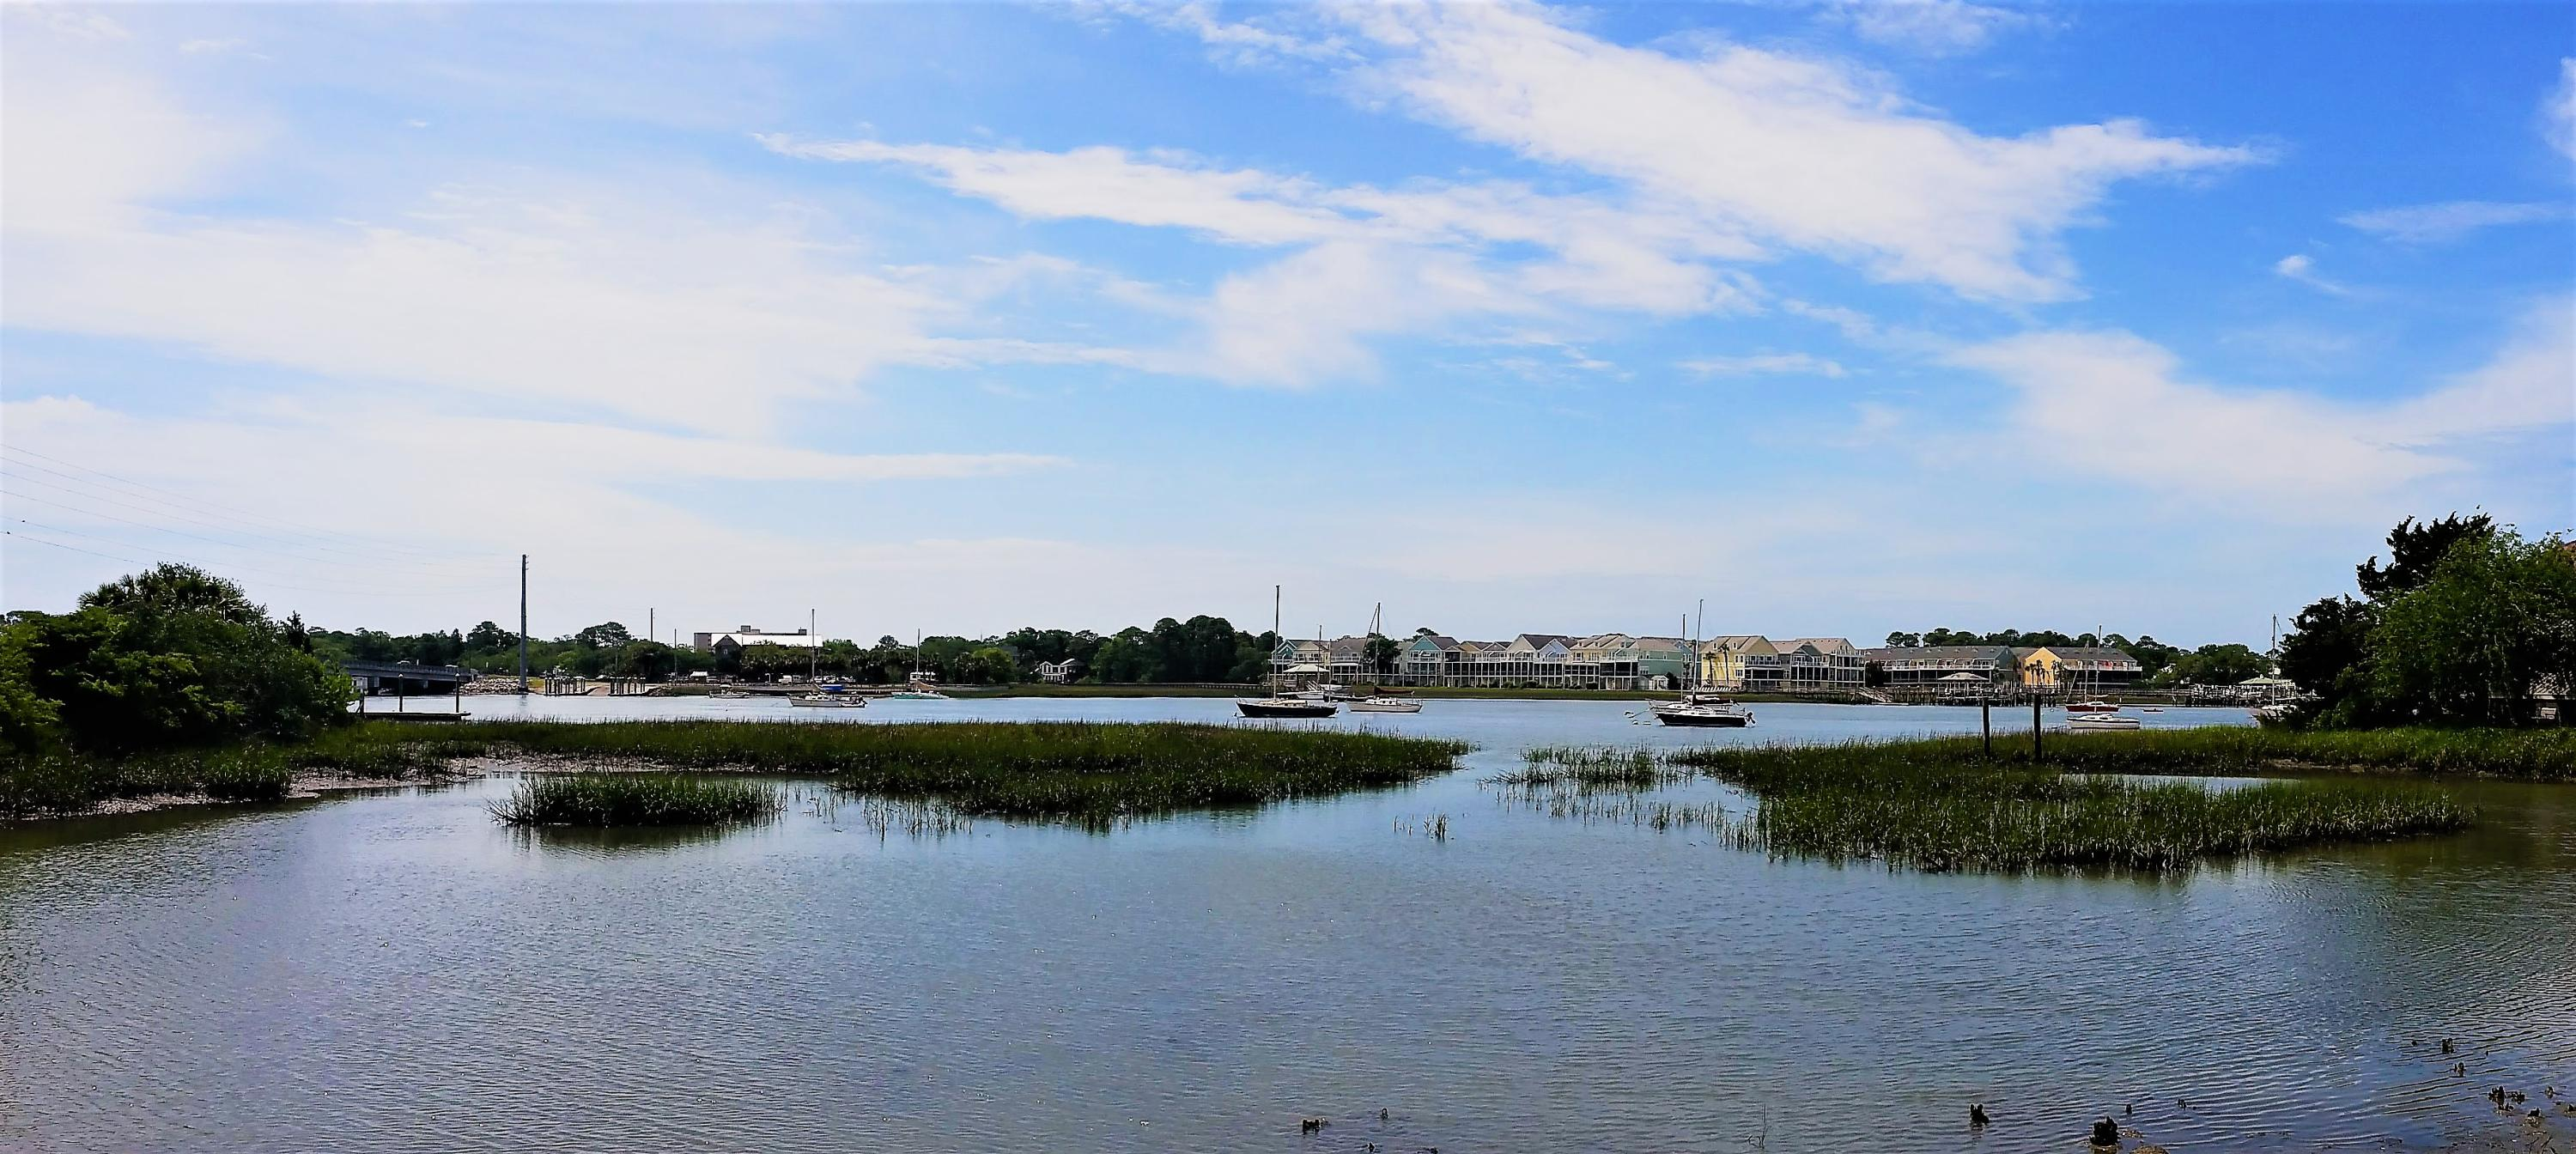 Mariners Cay Homes For Sale - 14 Mariners Cay, Folly Beach, SC - 5